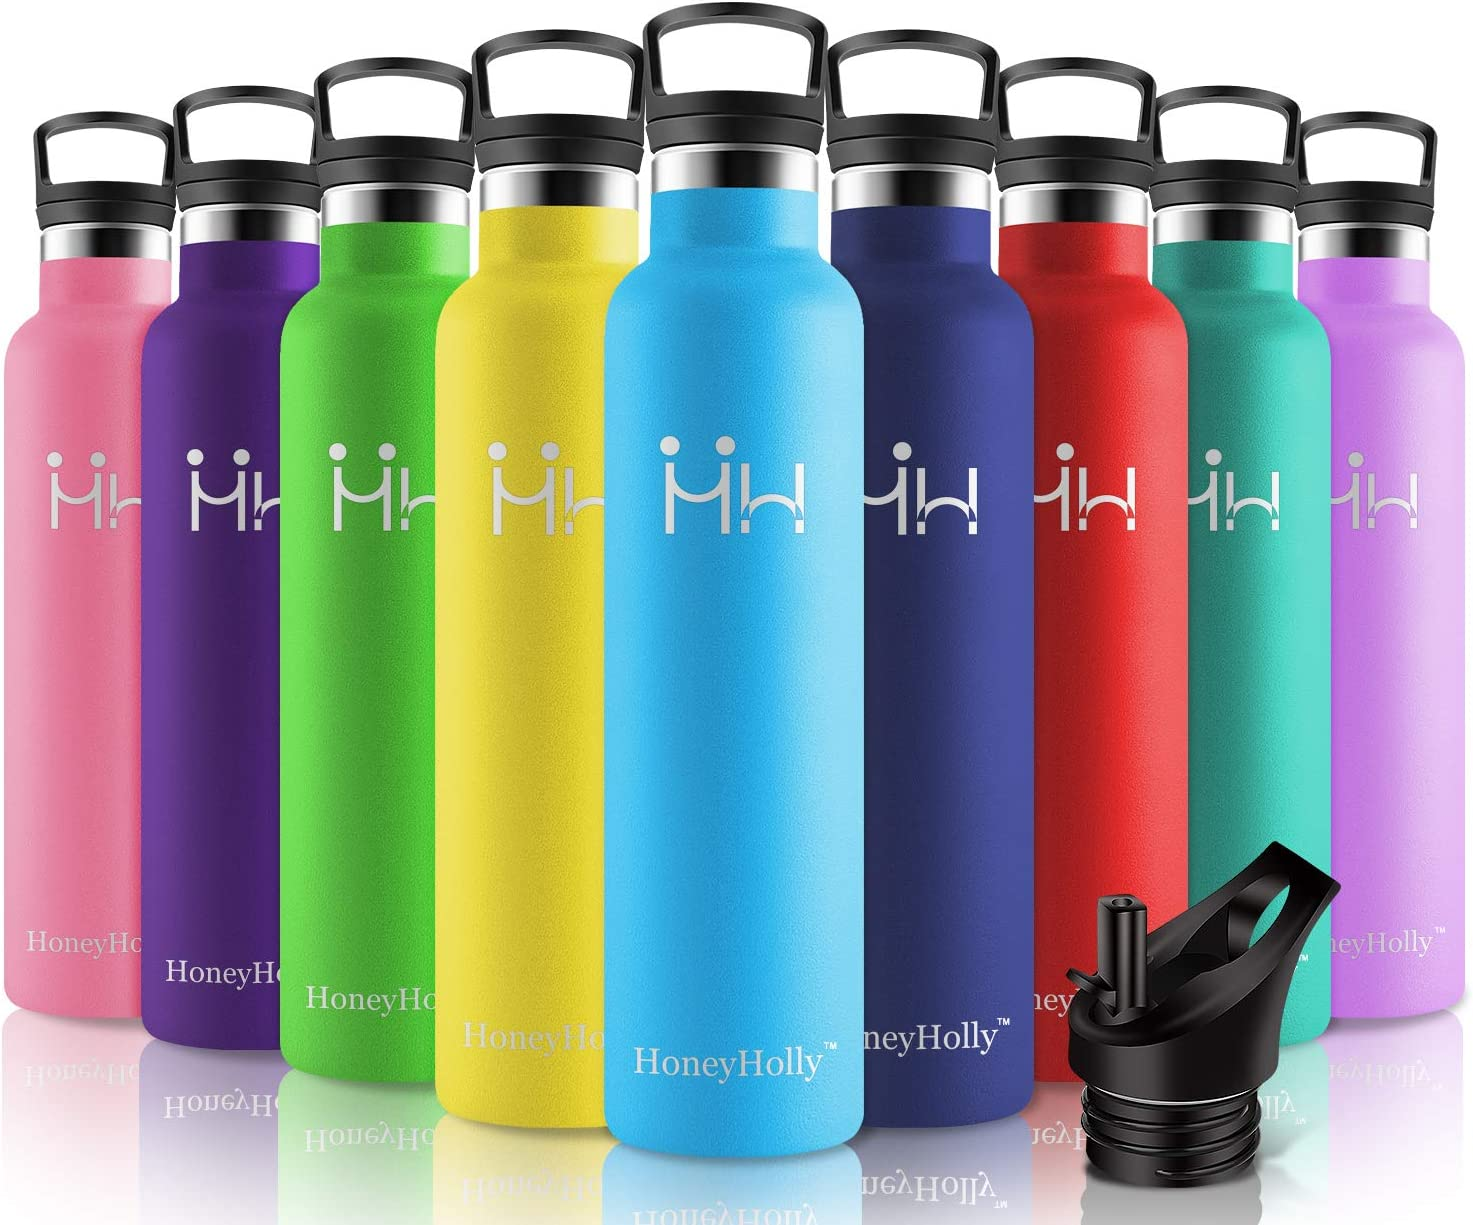 HoneyHolly Stainless Steel Vacuum Insulated Water Bottle,Reusable Bpa Free Metal Sport Bottles with Straw & Filter,1000ML eakproof Hot & Cold Drinks BottleTravel Thermoflask for Kids